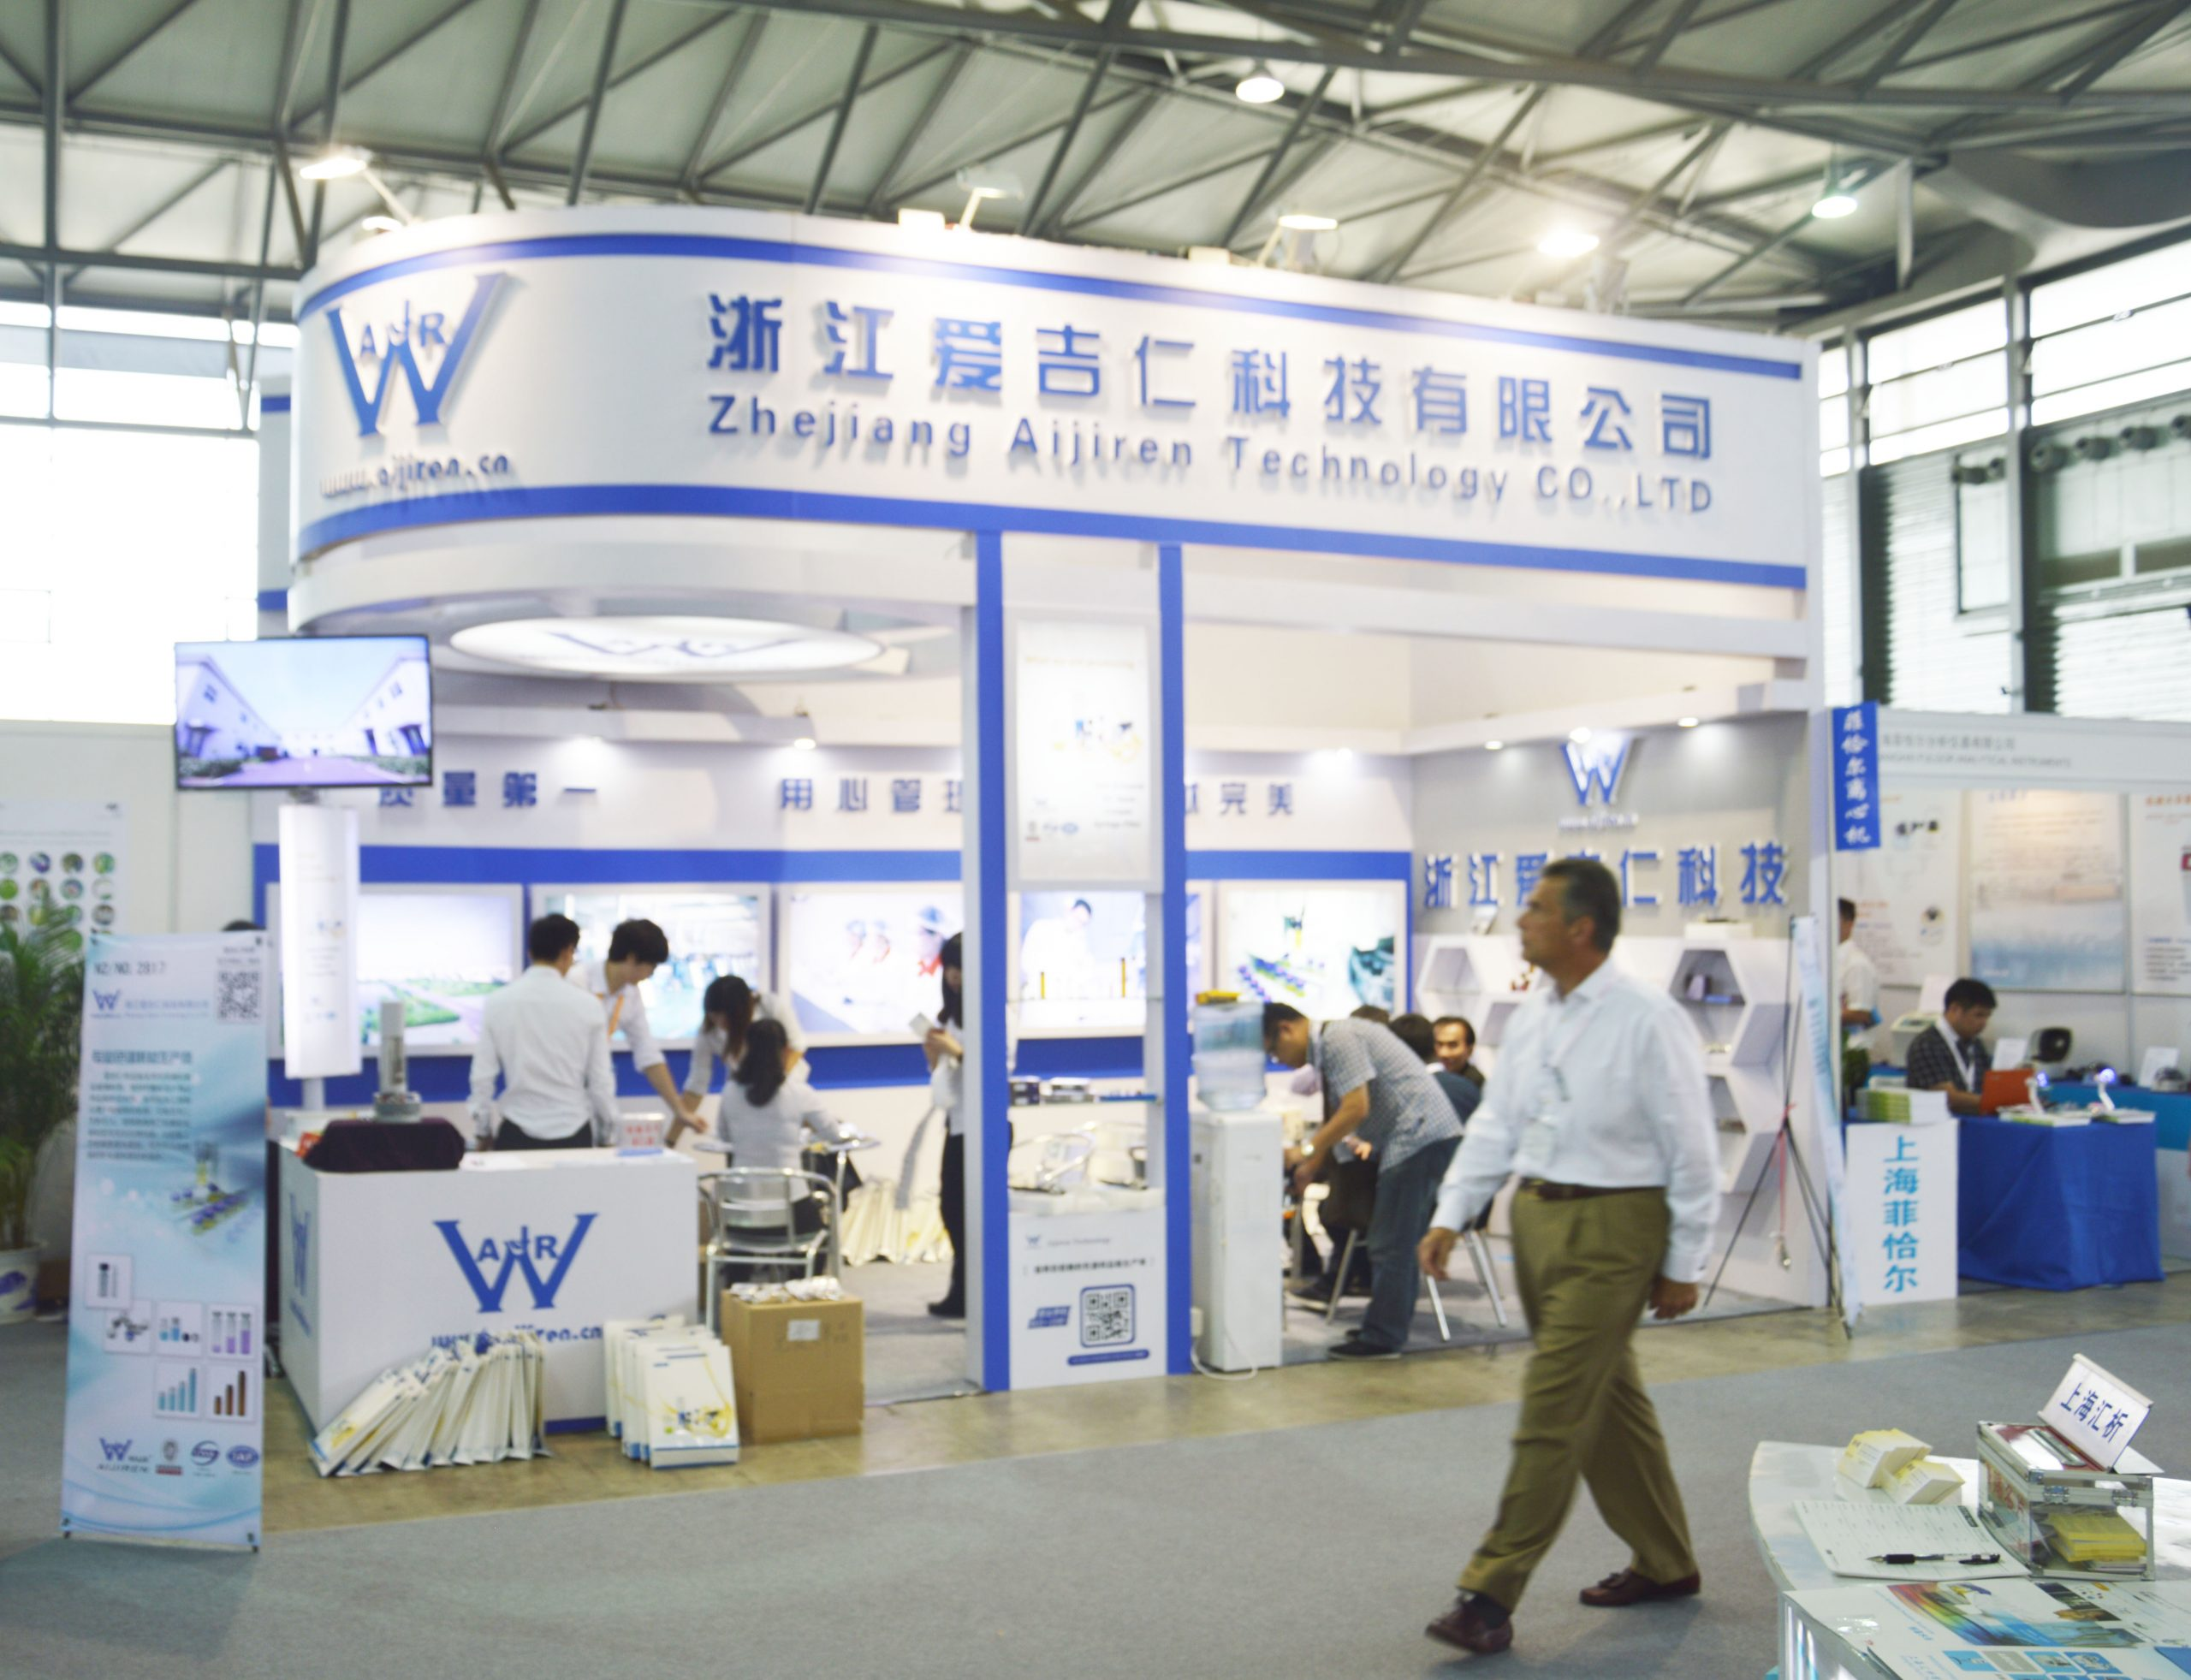 Lab Vials for HPLCAijiren Technology's perfect curtain call Munich Analytica China Conference